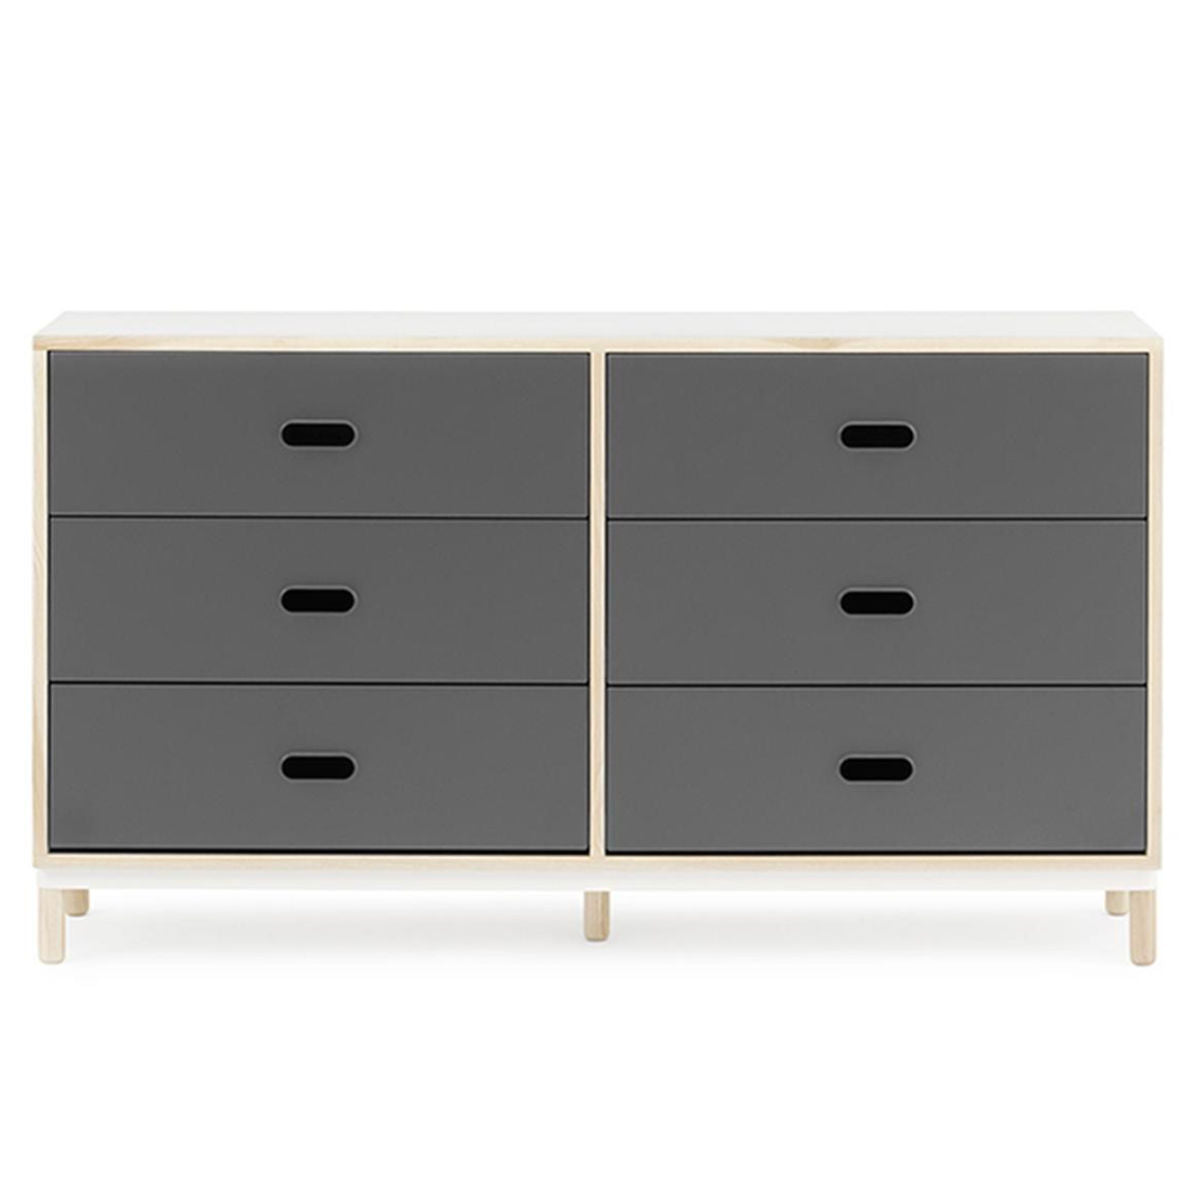 Normann Copenhagen Kabino dresser with six drawers, grey